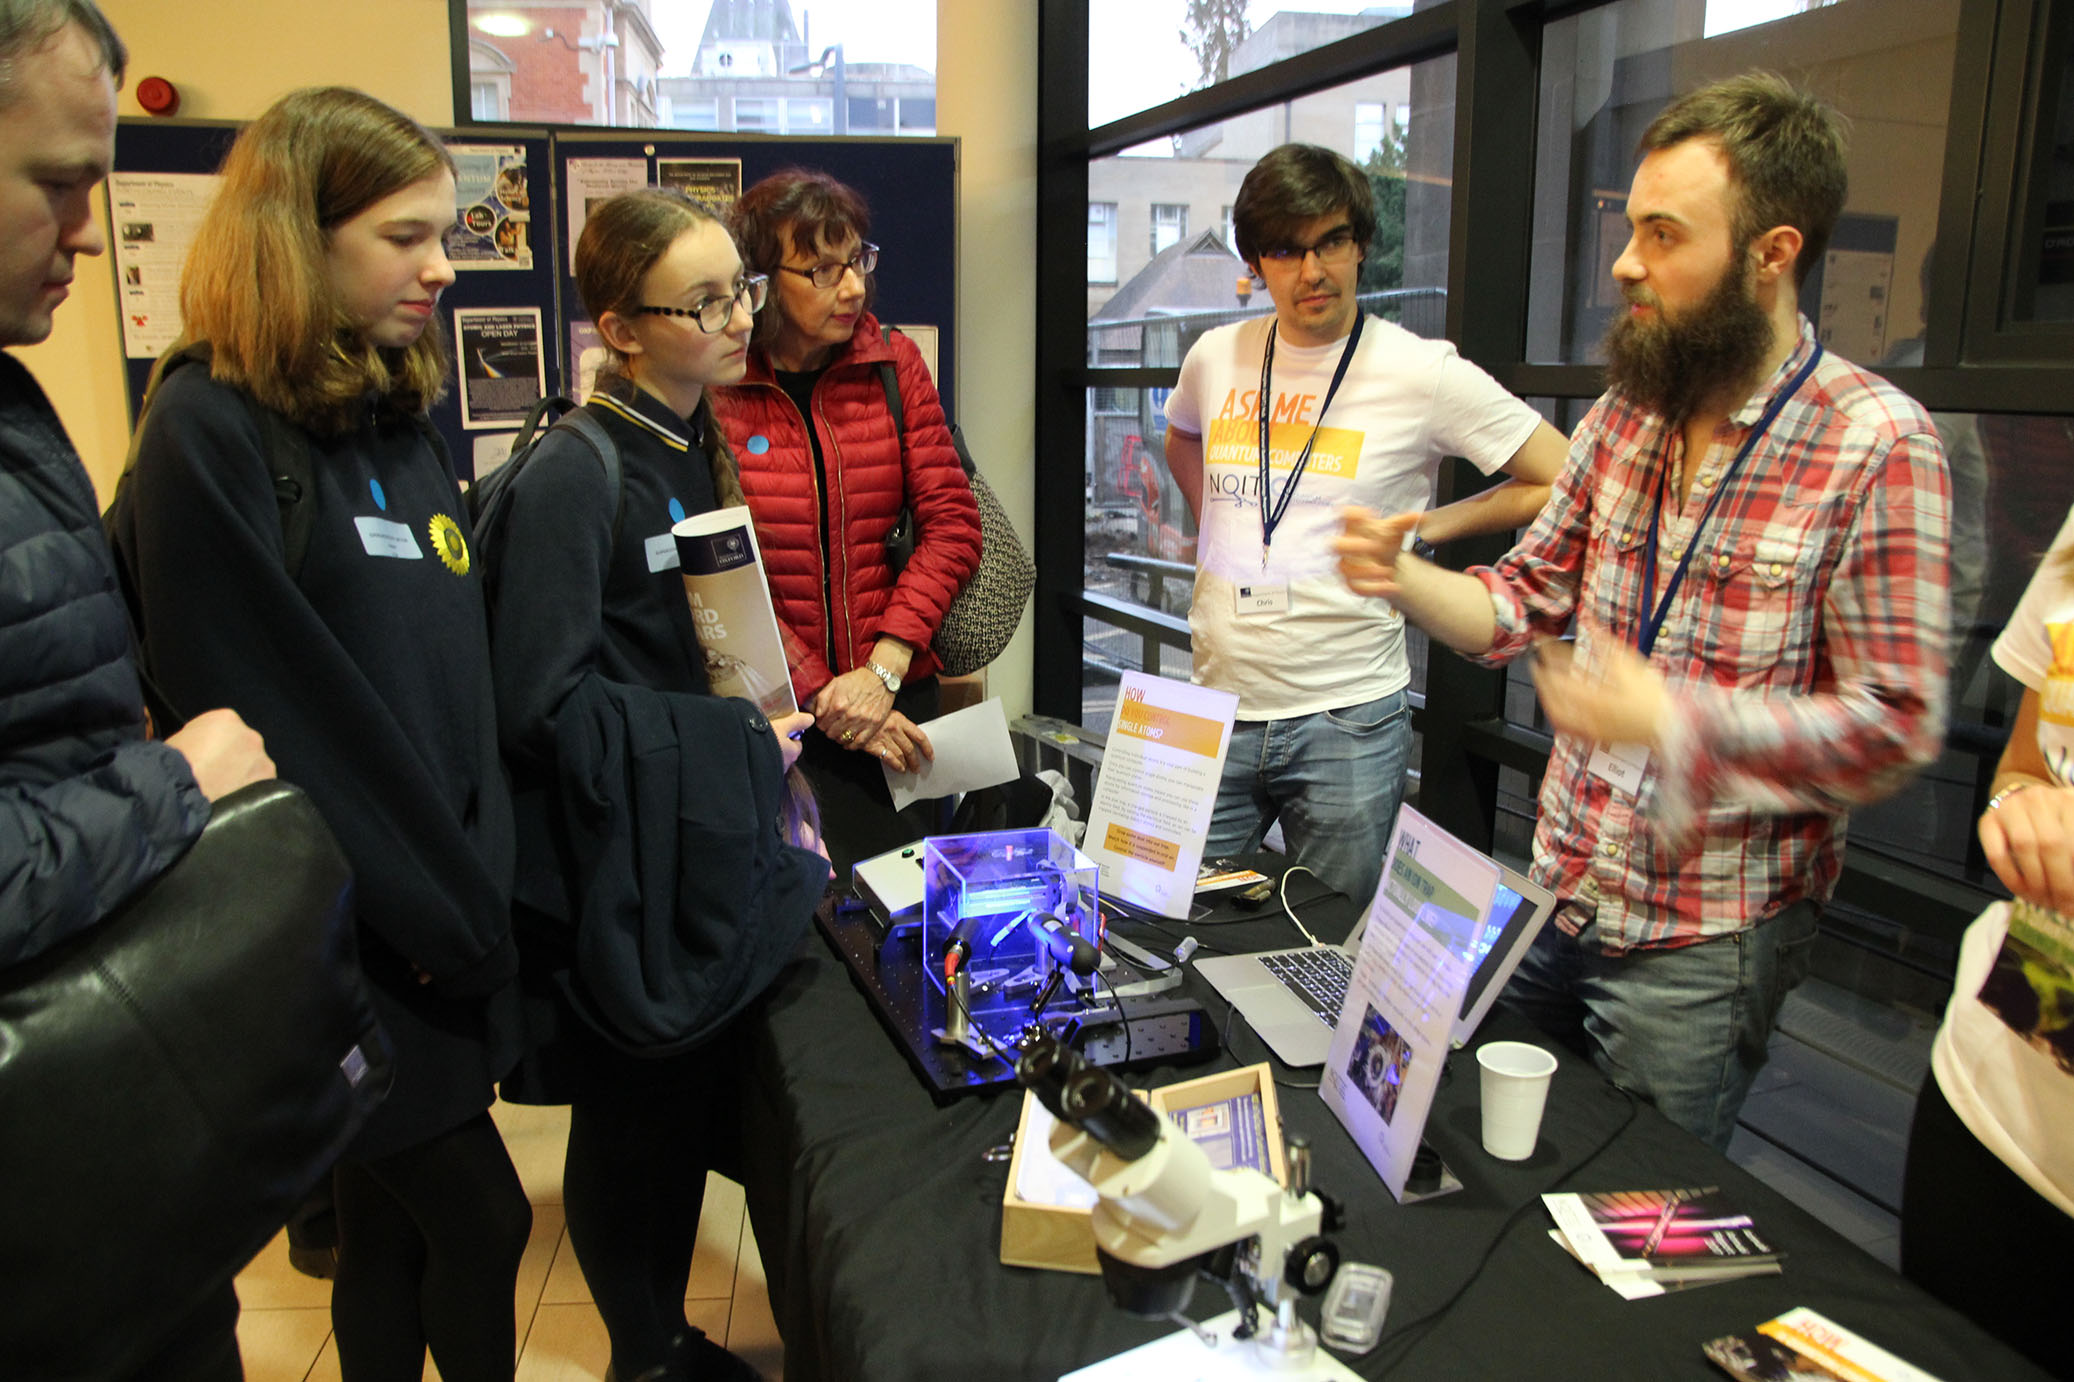 Science Fair at the Evening of Quantum Discovery / Credit: Olga Brecht, NQIT